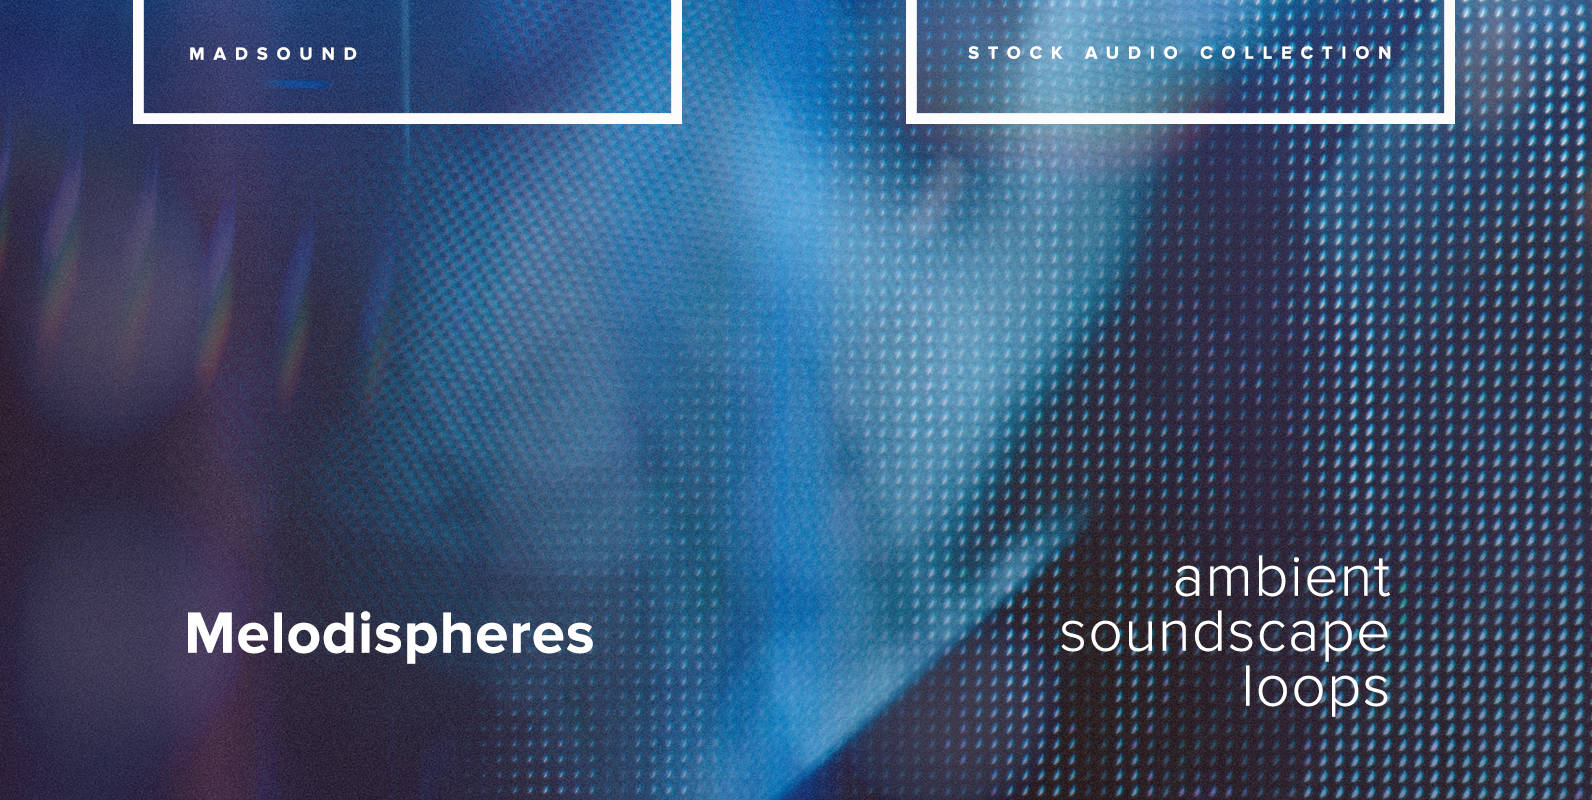 Melodispheres - Ambient Soundscape Loops